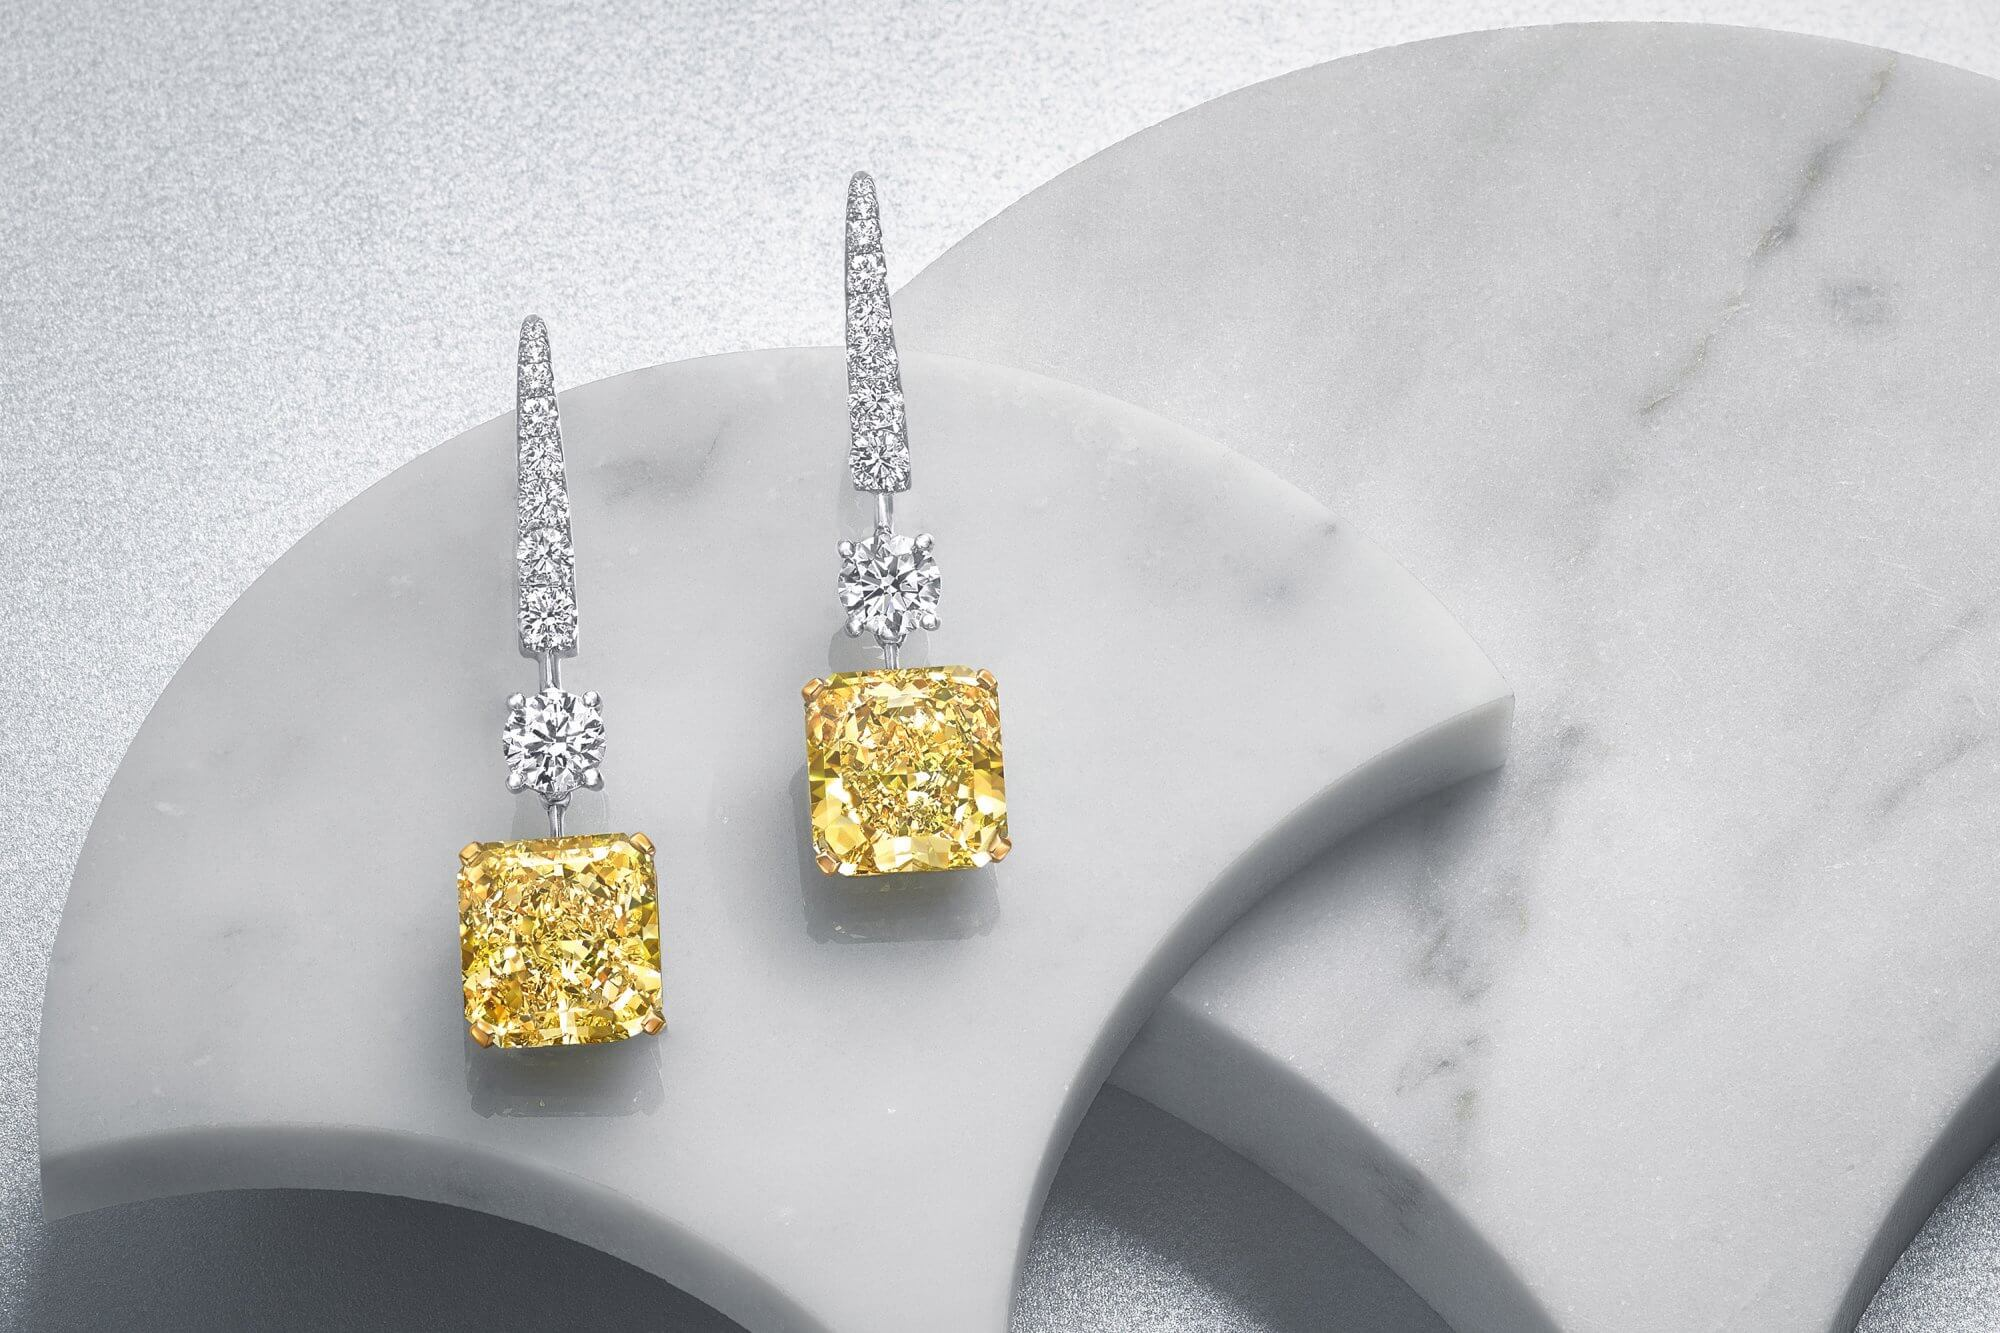 jewelry earrings diamond canary simulated shop studs european ctw white product